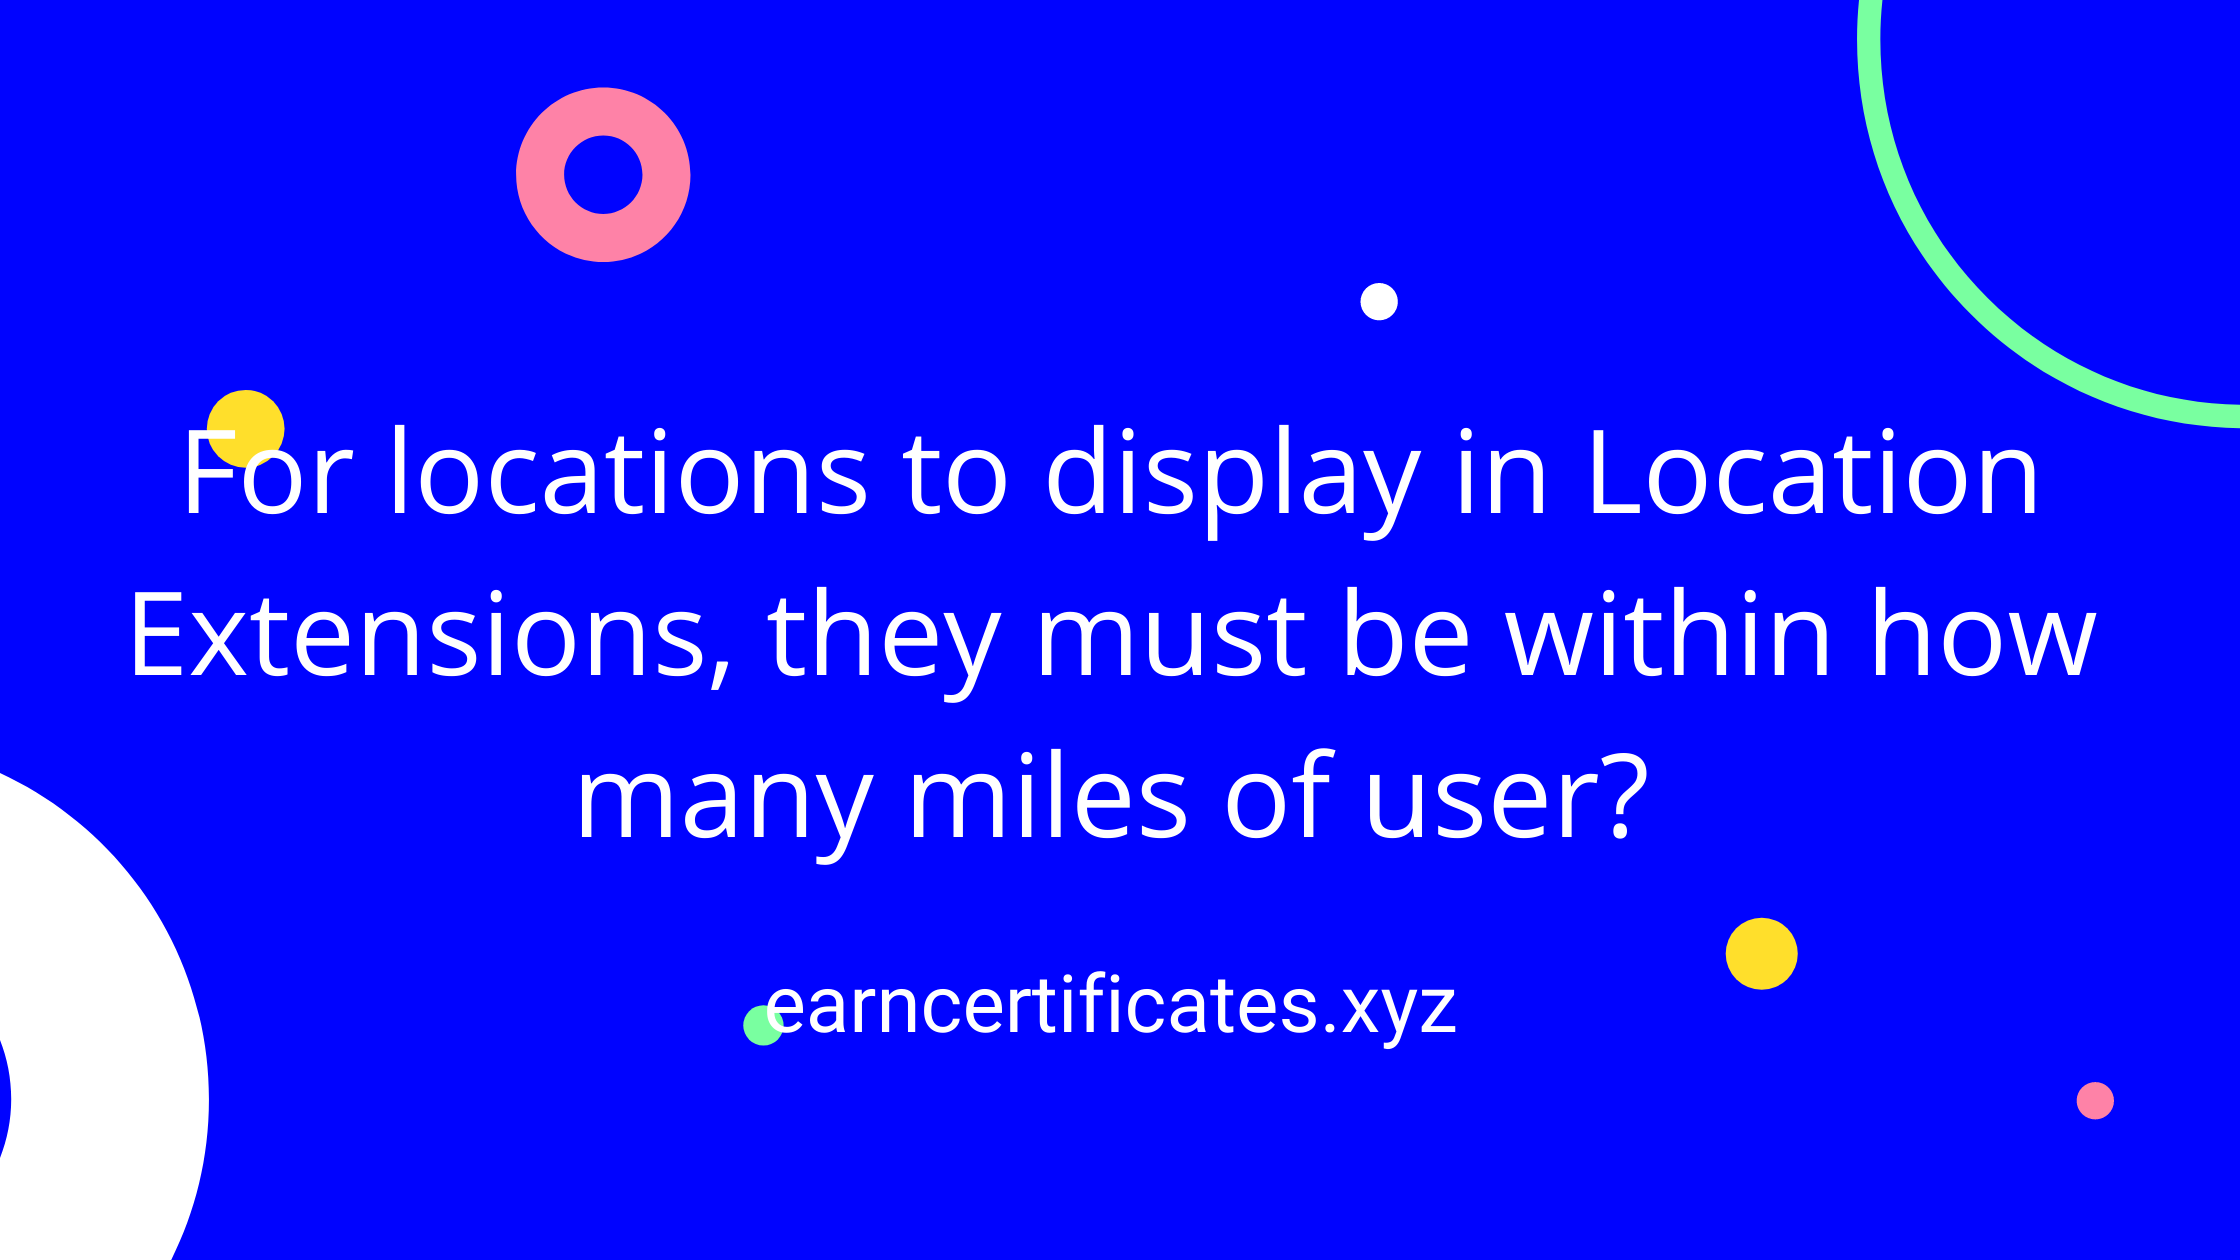 For locations to display in Location Extensions, they must be within how many miles of user?